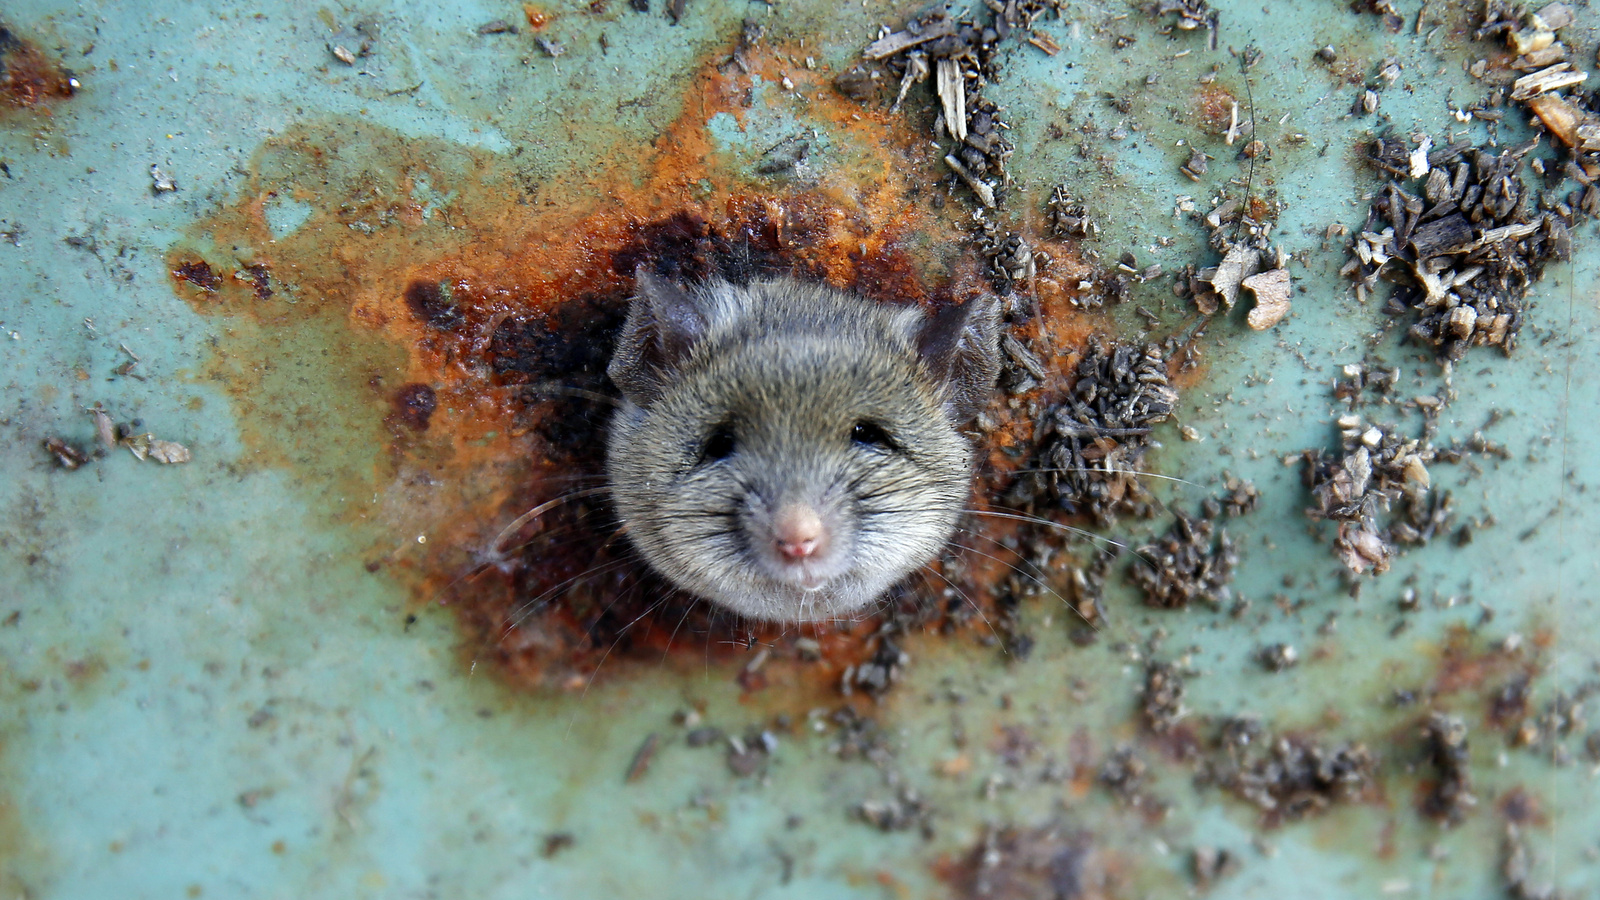 A rat's head rests as it is constricted in an opening in the bottom of a garbage can in the Brooklyn borough of New York City, Oct. 18, 2016.